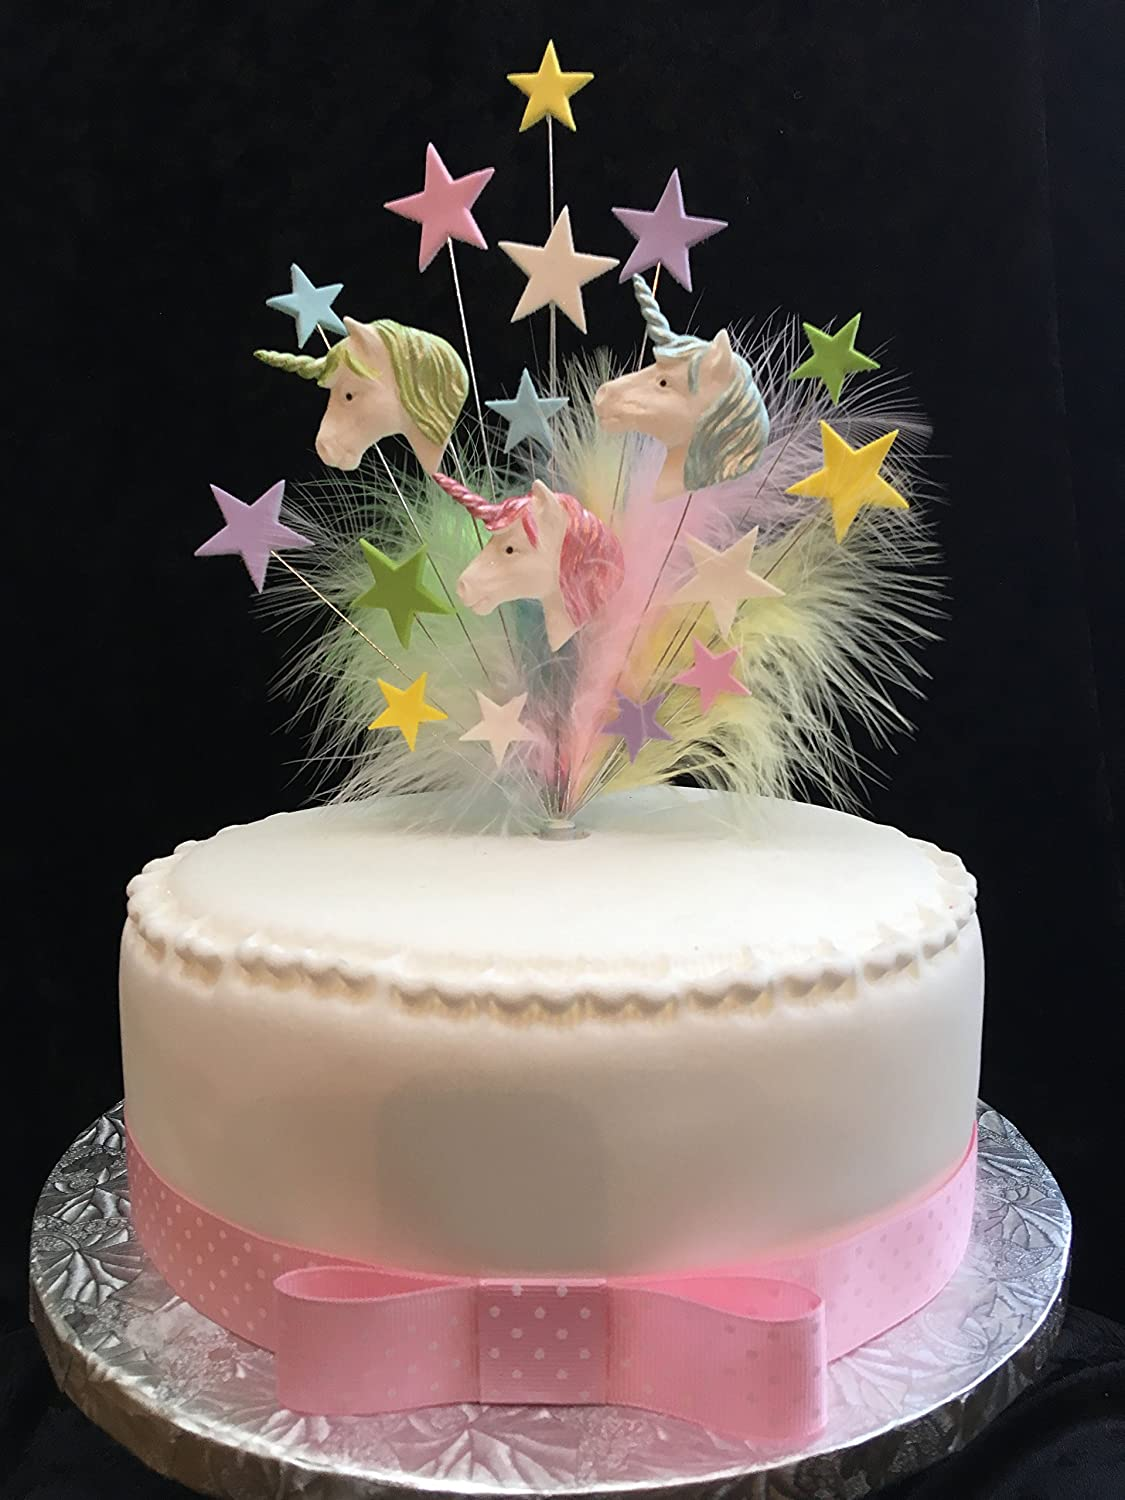 Tremendous Unicorn Birthday Cake Topper With Stars And Marabou Feathers Funny Birthday Cards Online Aboleapandamsfinfo